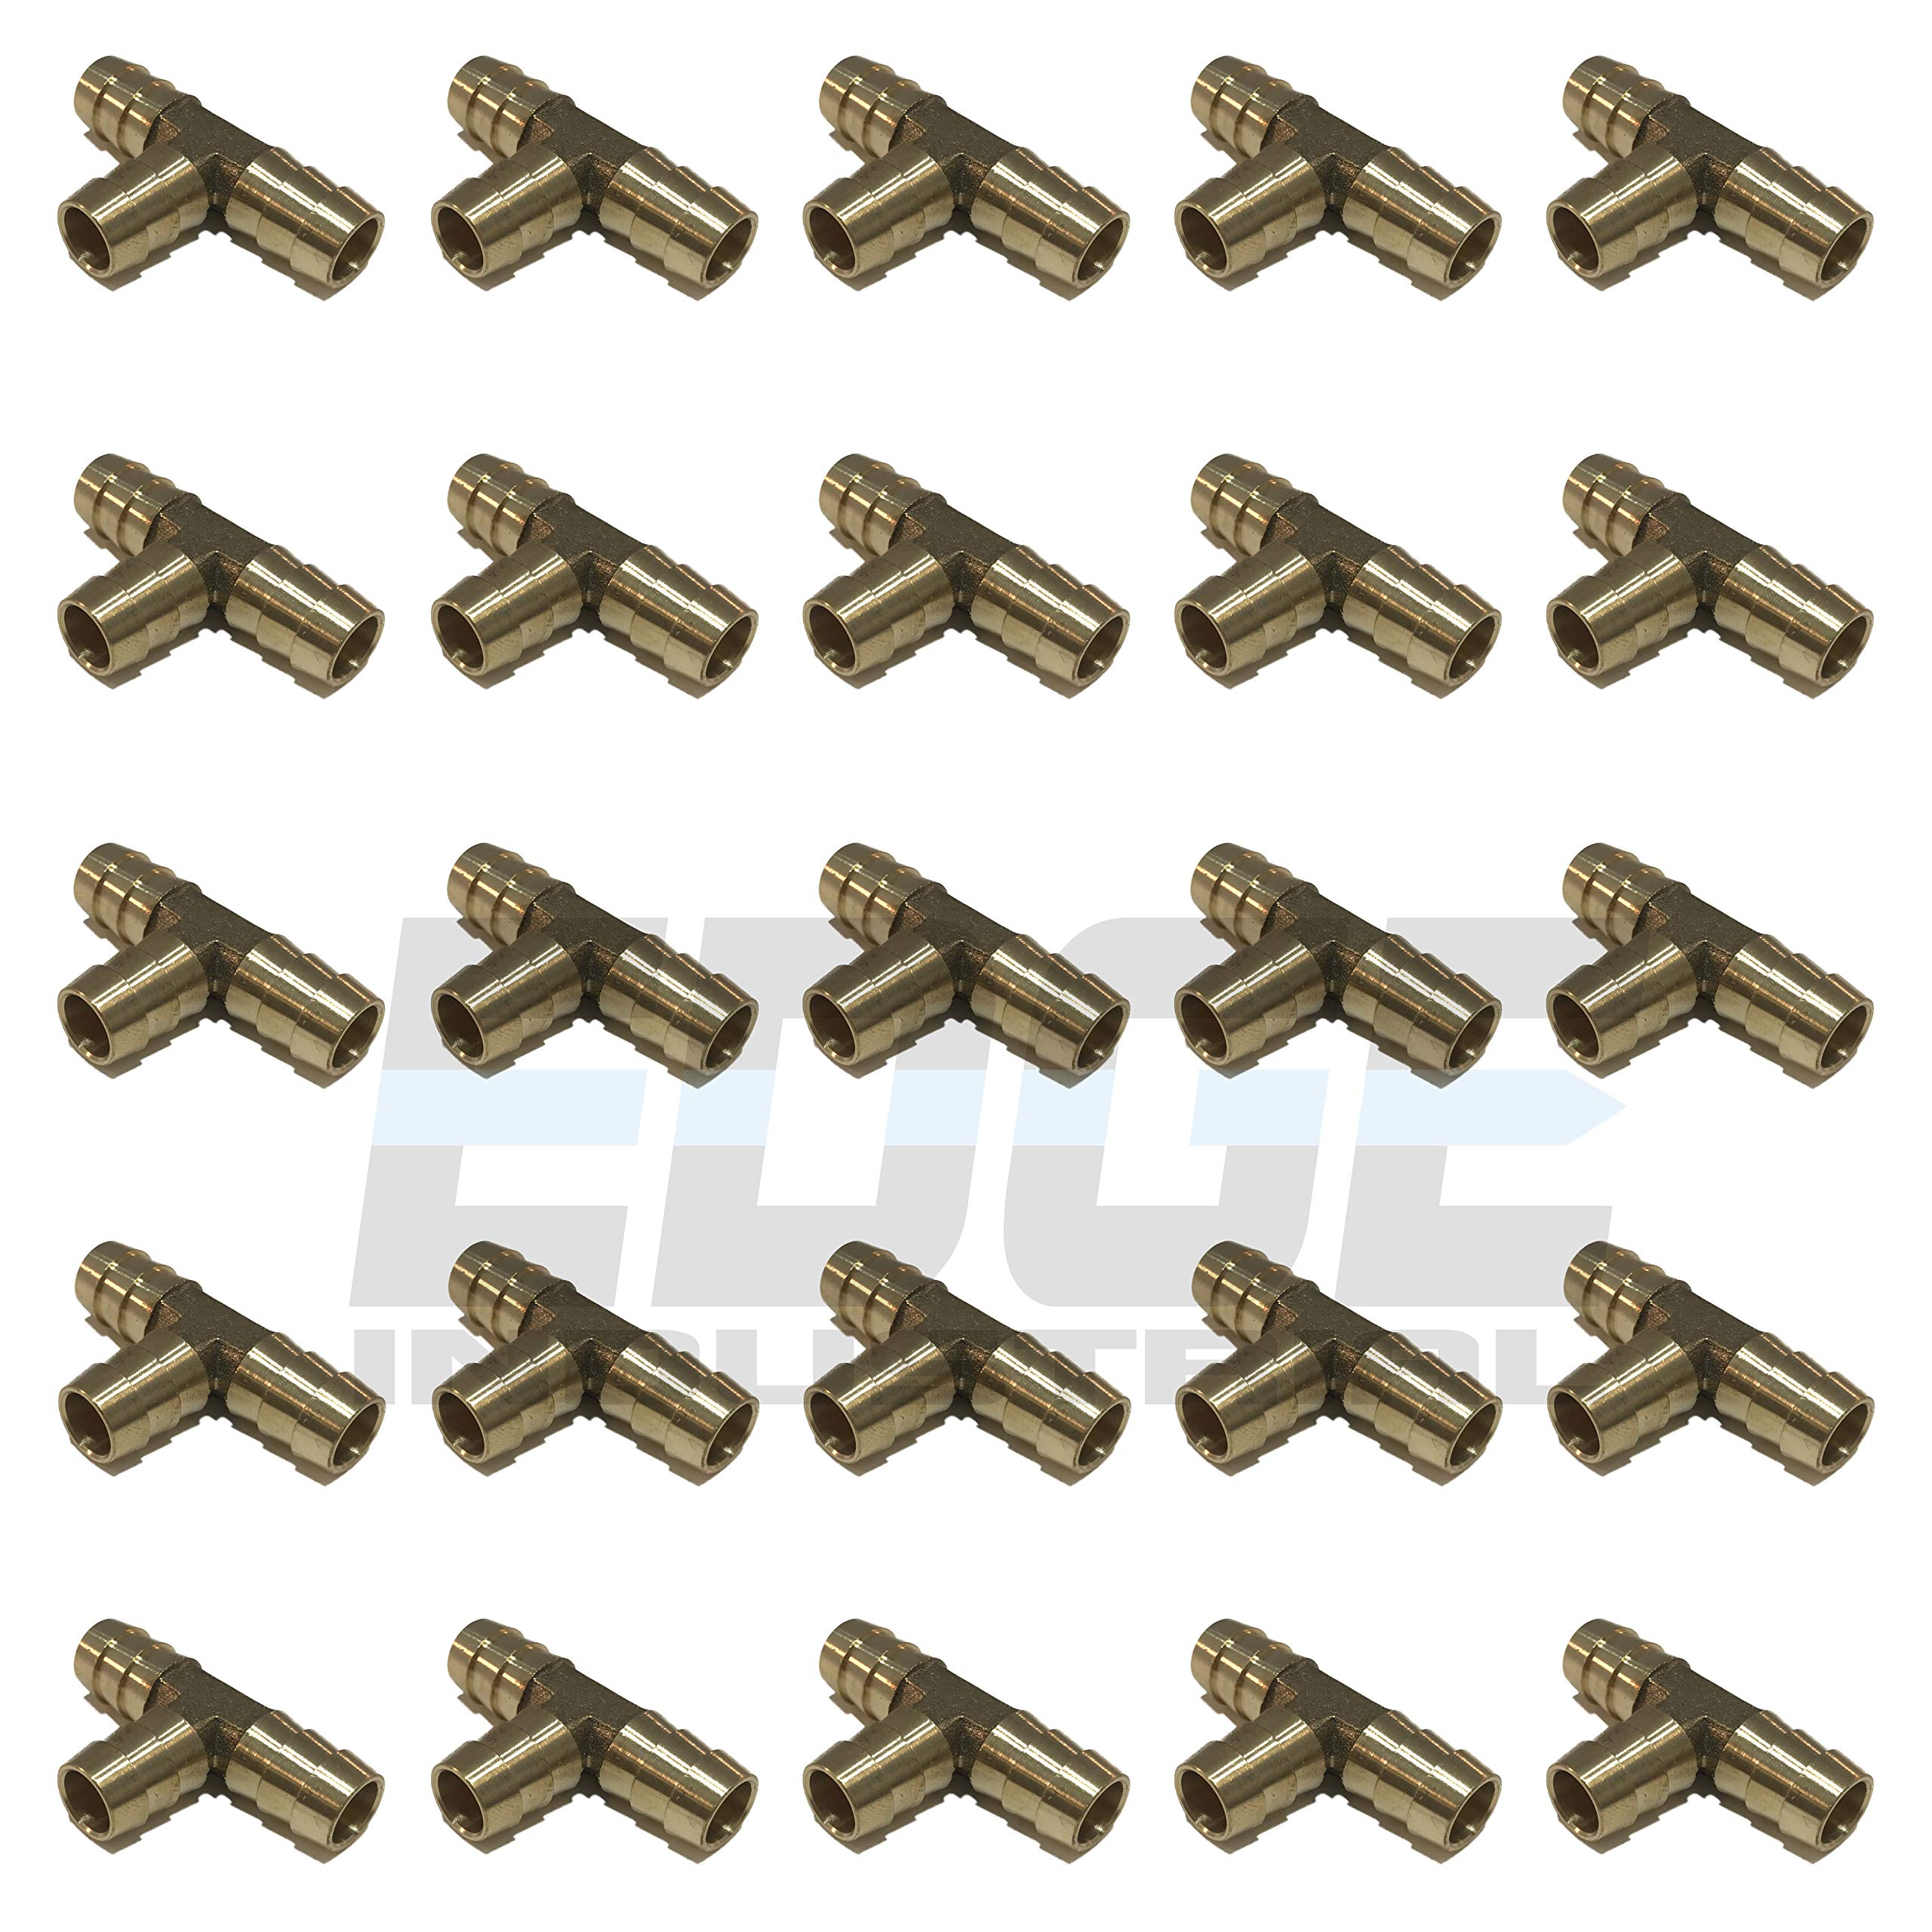 EDGE INDUSTRIAL 1/2'' Hose ID Brass Hose Barb TEE SPLICER Fitting Fuel / AIR / Water / Oil / Gas / WOG (Qty 25)